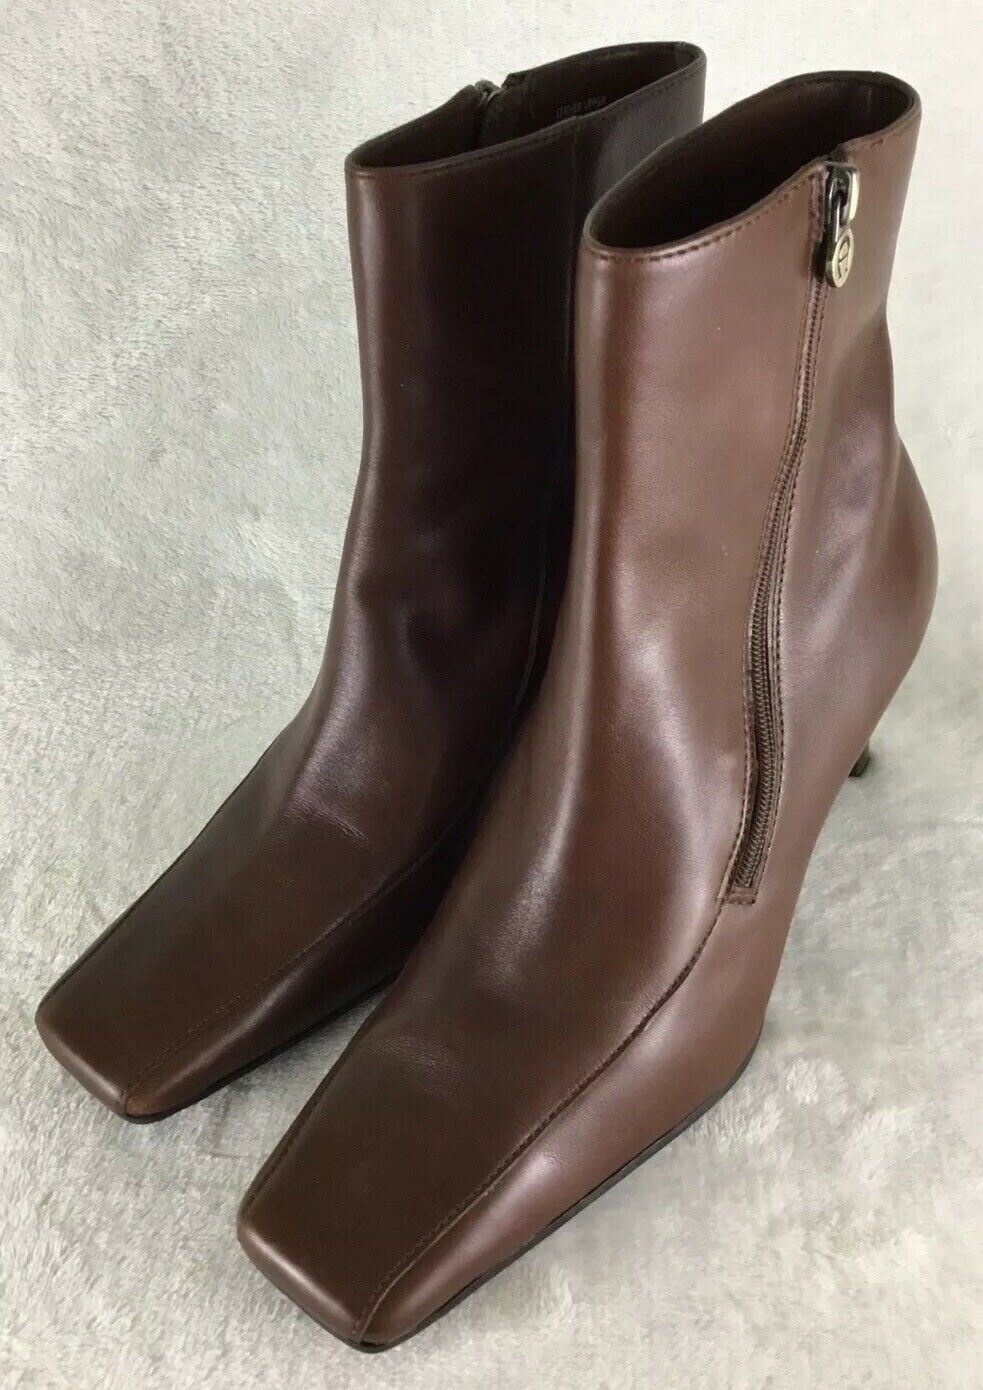 Etienne Aigner Womens Brown Leather Square Toe High Heel Ankle Boots E-Day Sz 6M